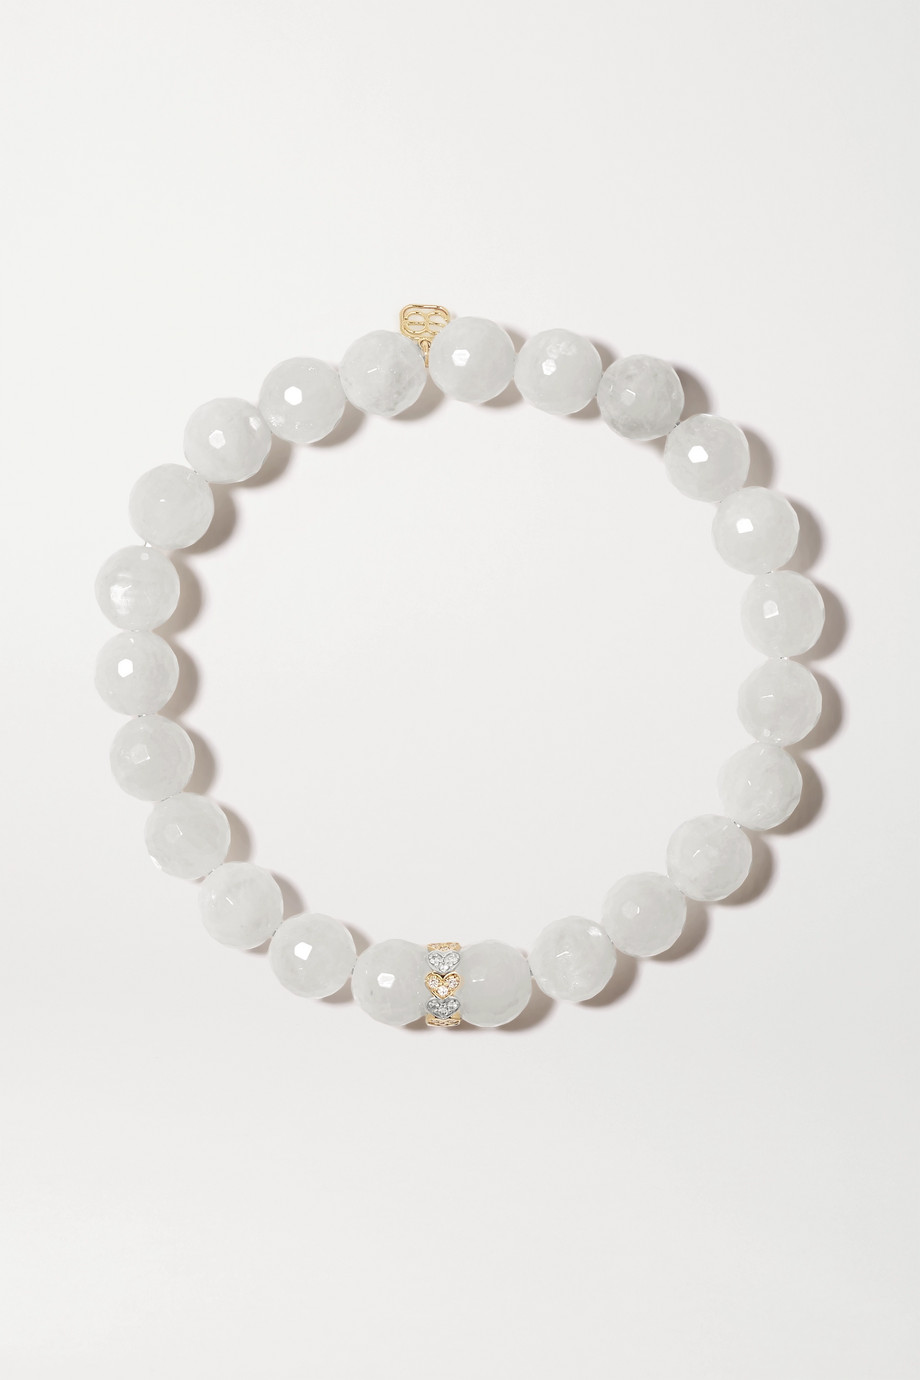 Sydney Evan Eternity Heart 14-karat yellow and white gold, moonstone and diamond bracelet